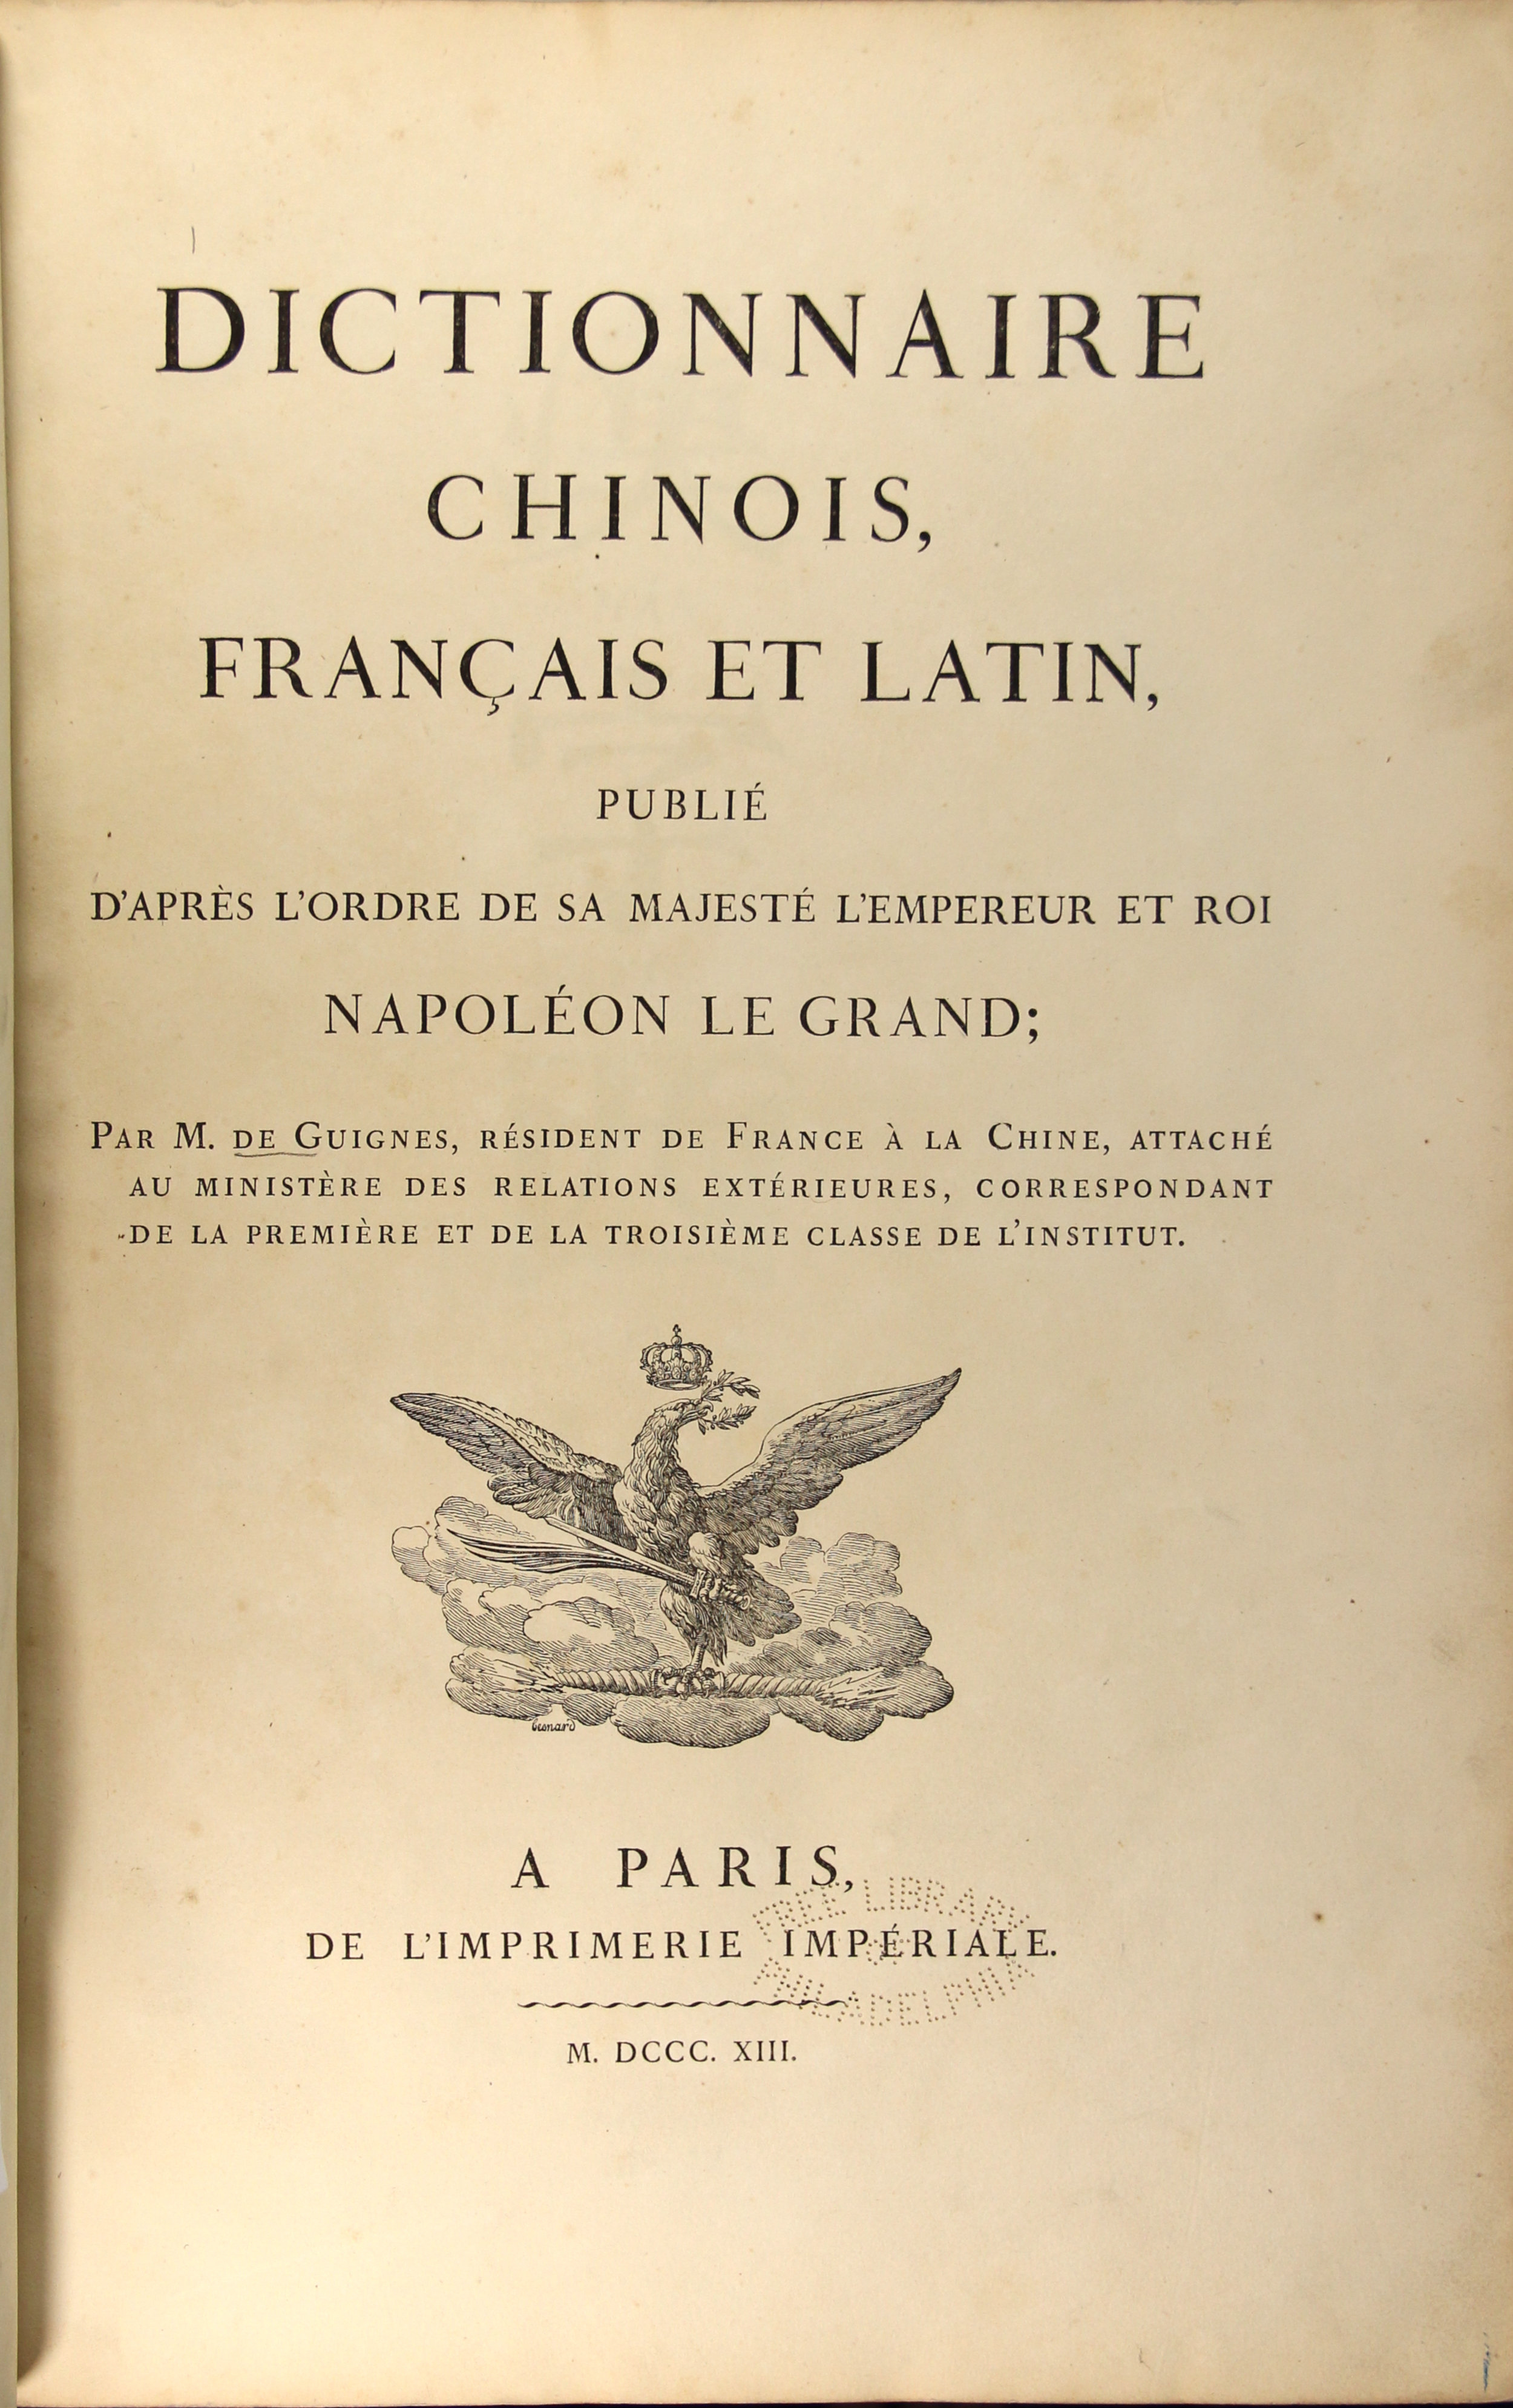 dictionnaire-chinois (2).JPG